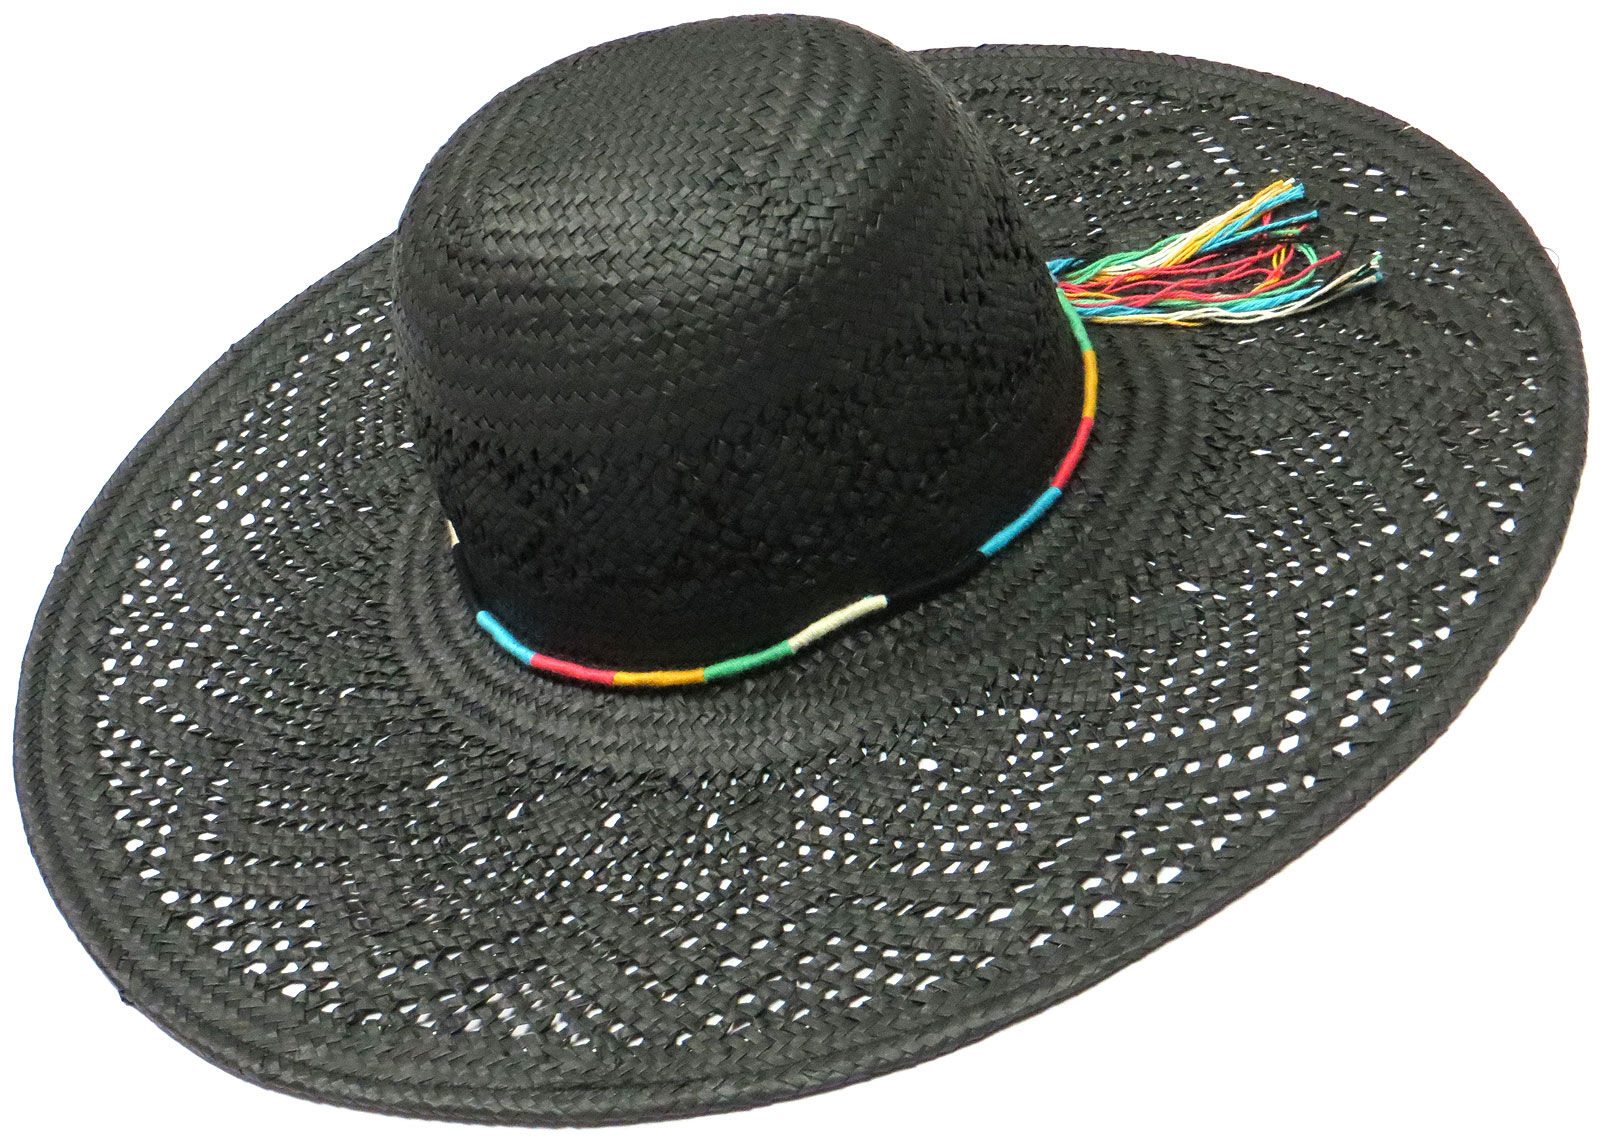 c718048a59eab8 Fend off those harmful UV rays in style! More varieties—wide & narrow brim,  both urban & beachy—in the store!